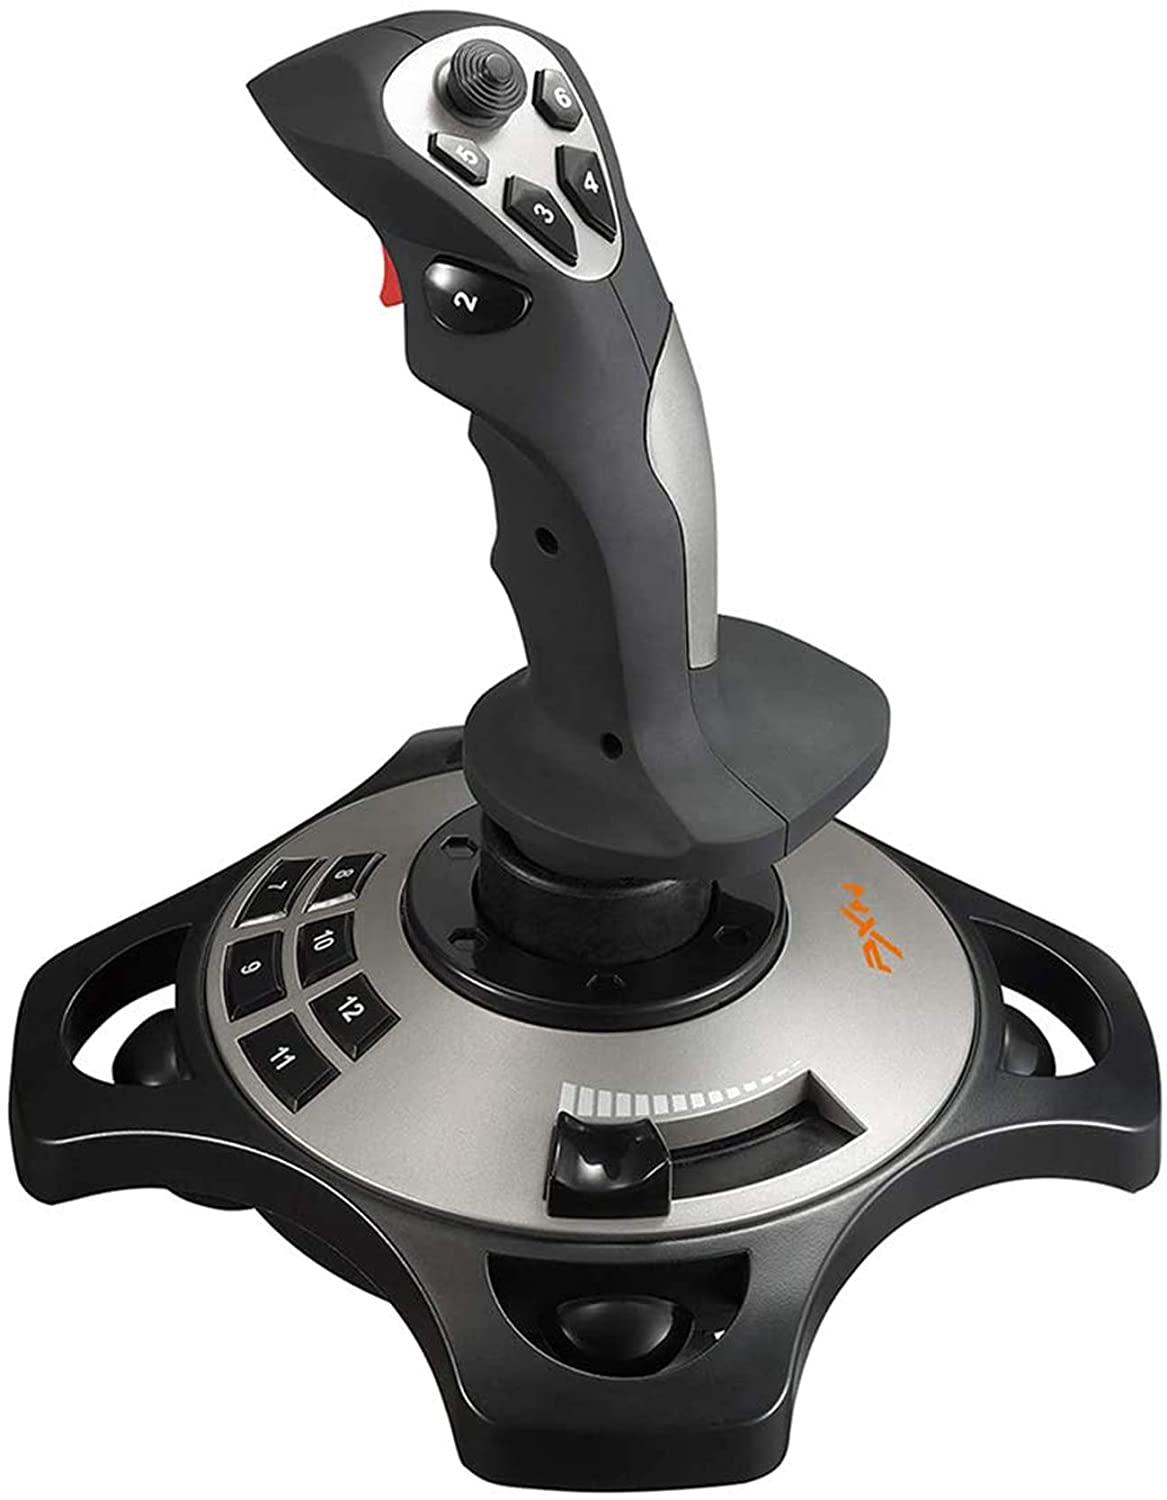 PXN-2113 USB Flight Stick PC Joystick Controller Simulator Gamepad Wired Gaming Control for Flight Stick Simulation Games, Advanced Throttle 4 Axis 8 Way HAT Switch, for Windows XP/VISTA/7/8: Computers & Accessories